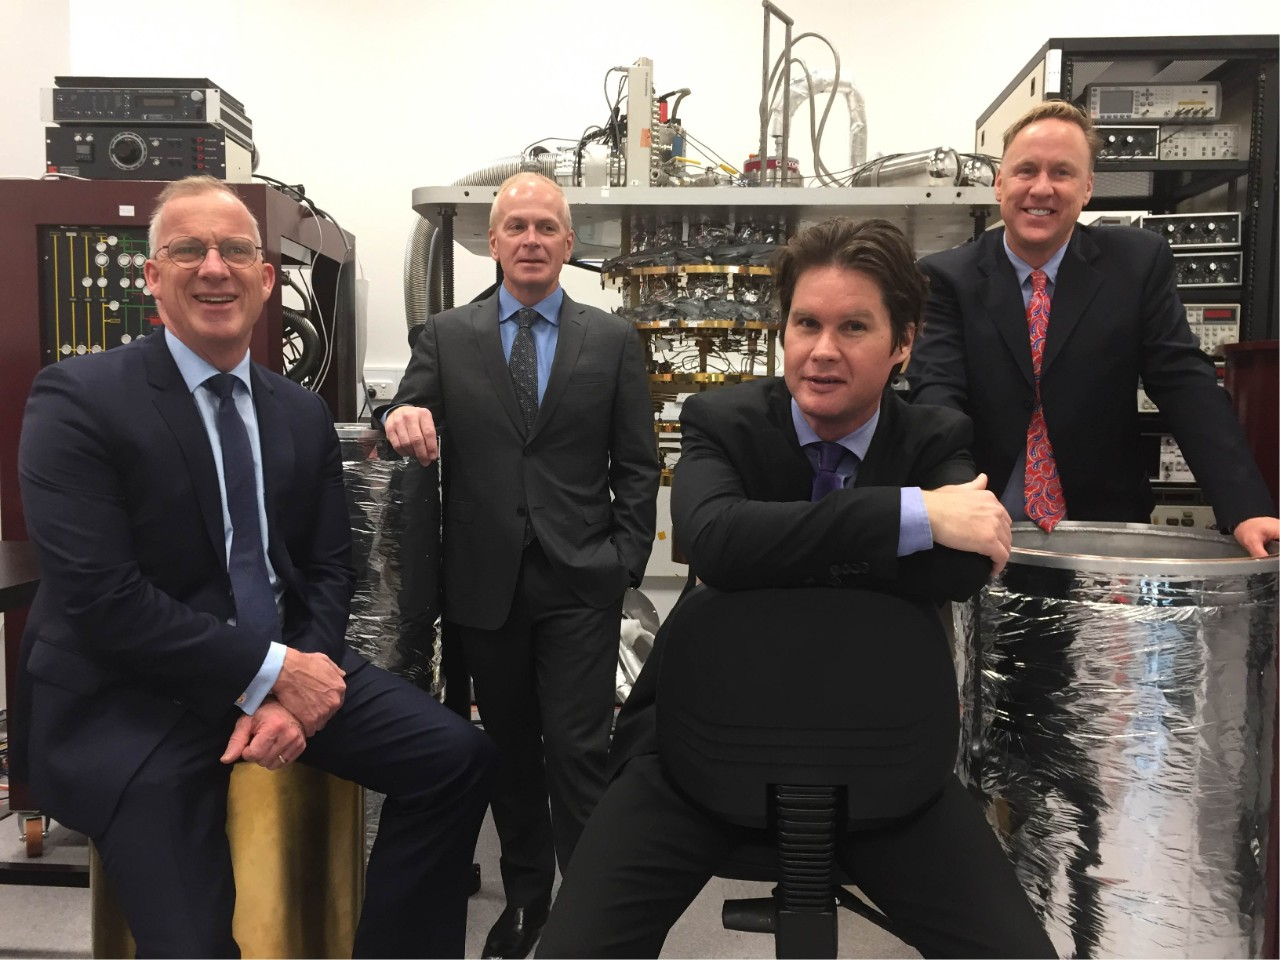 Dr Michael Spence, Douglas Carmean, Professor David Reilly and David Pritchard from Microsoft at the University's Sydney Nanoscience Lab.